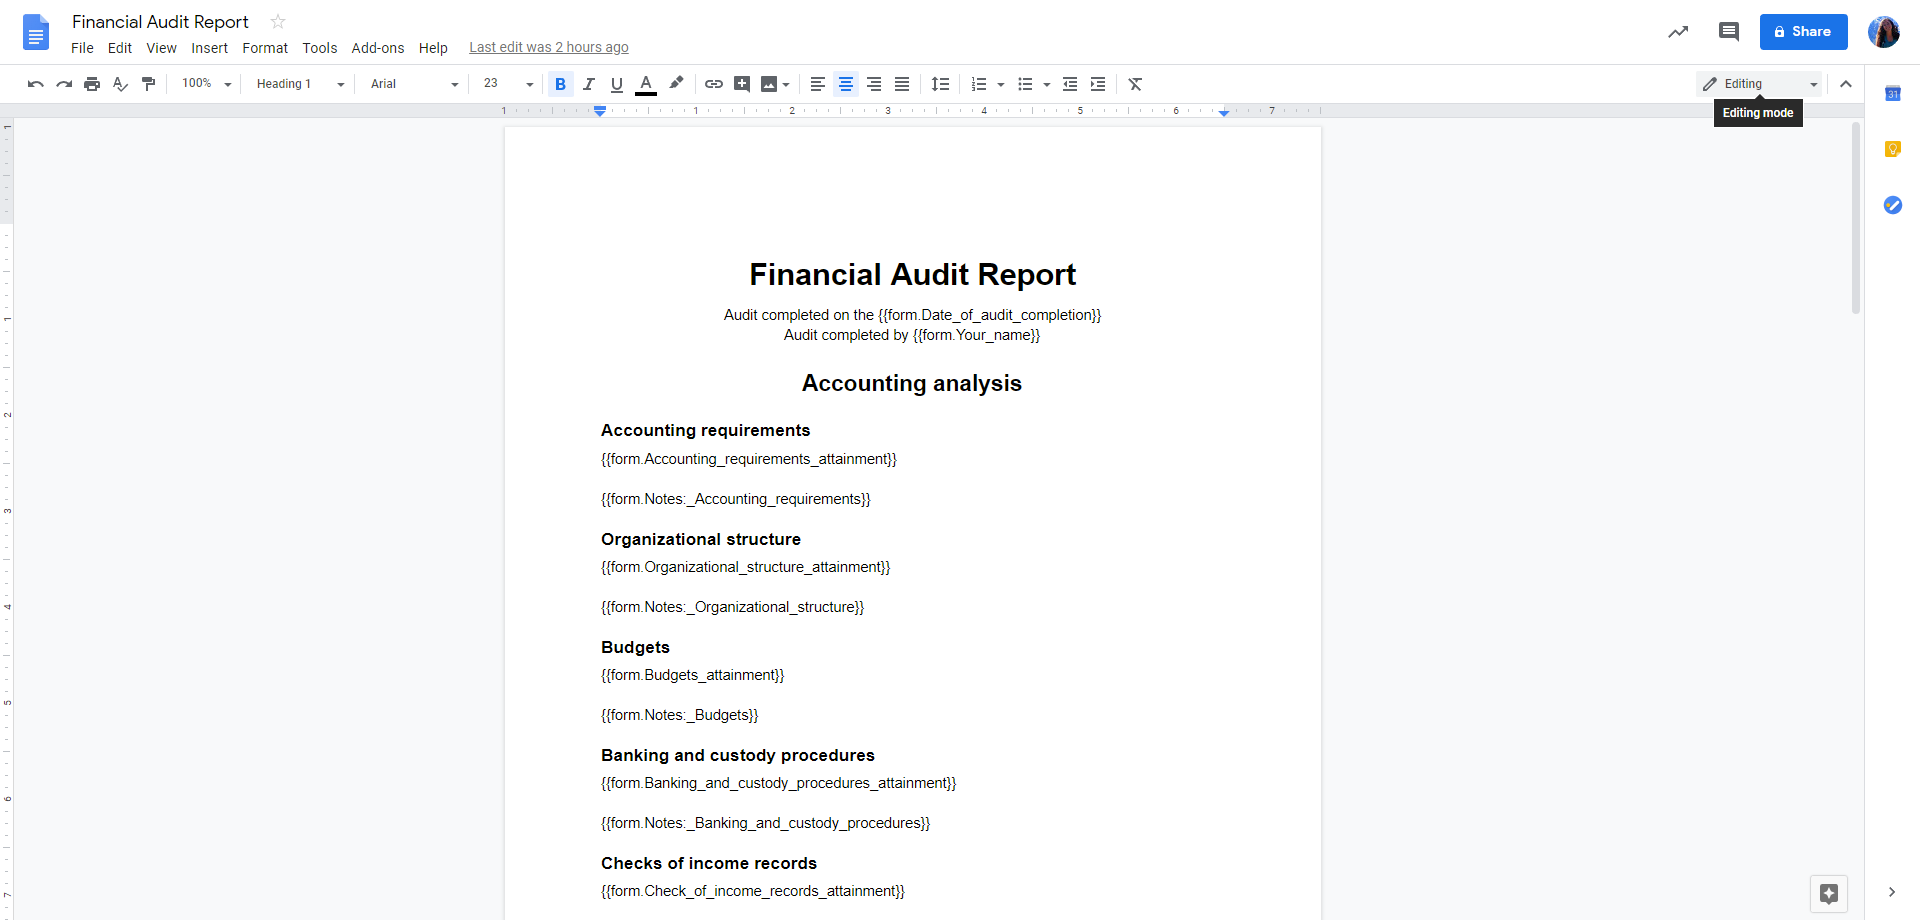 Re-open a blank version of the Finance Audit Checklist and click on the 'Edit Template' option on the screens right-hand side. Once you have opened the 'Edit Template' view, go to the 'Your Report' task and copy and paste the entire text into a new google document as above. Name this document and save. When the 'Zap' has been created using Zapier, the relevant information from your final report will populate the form fields in this document.